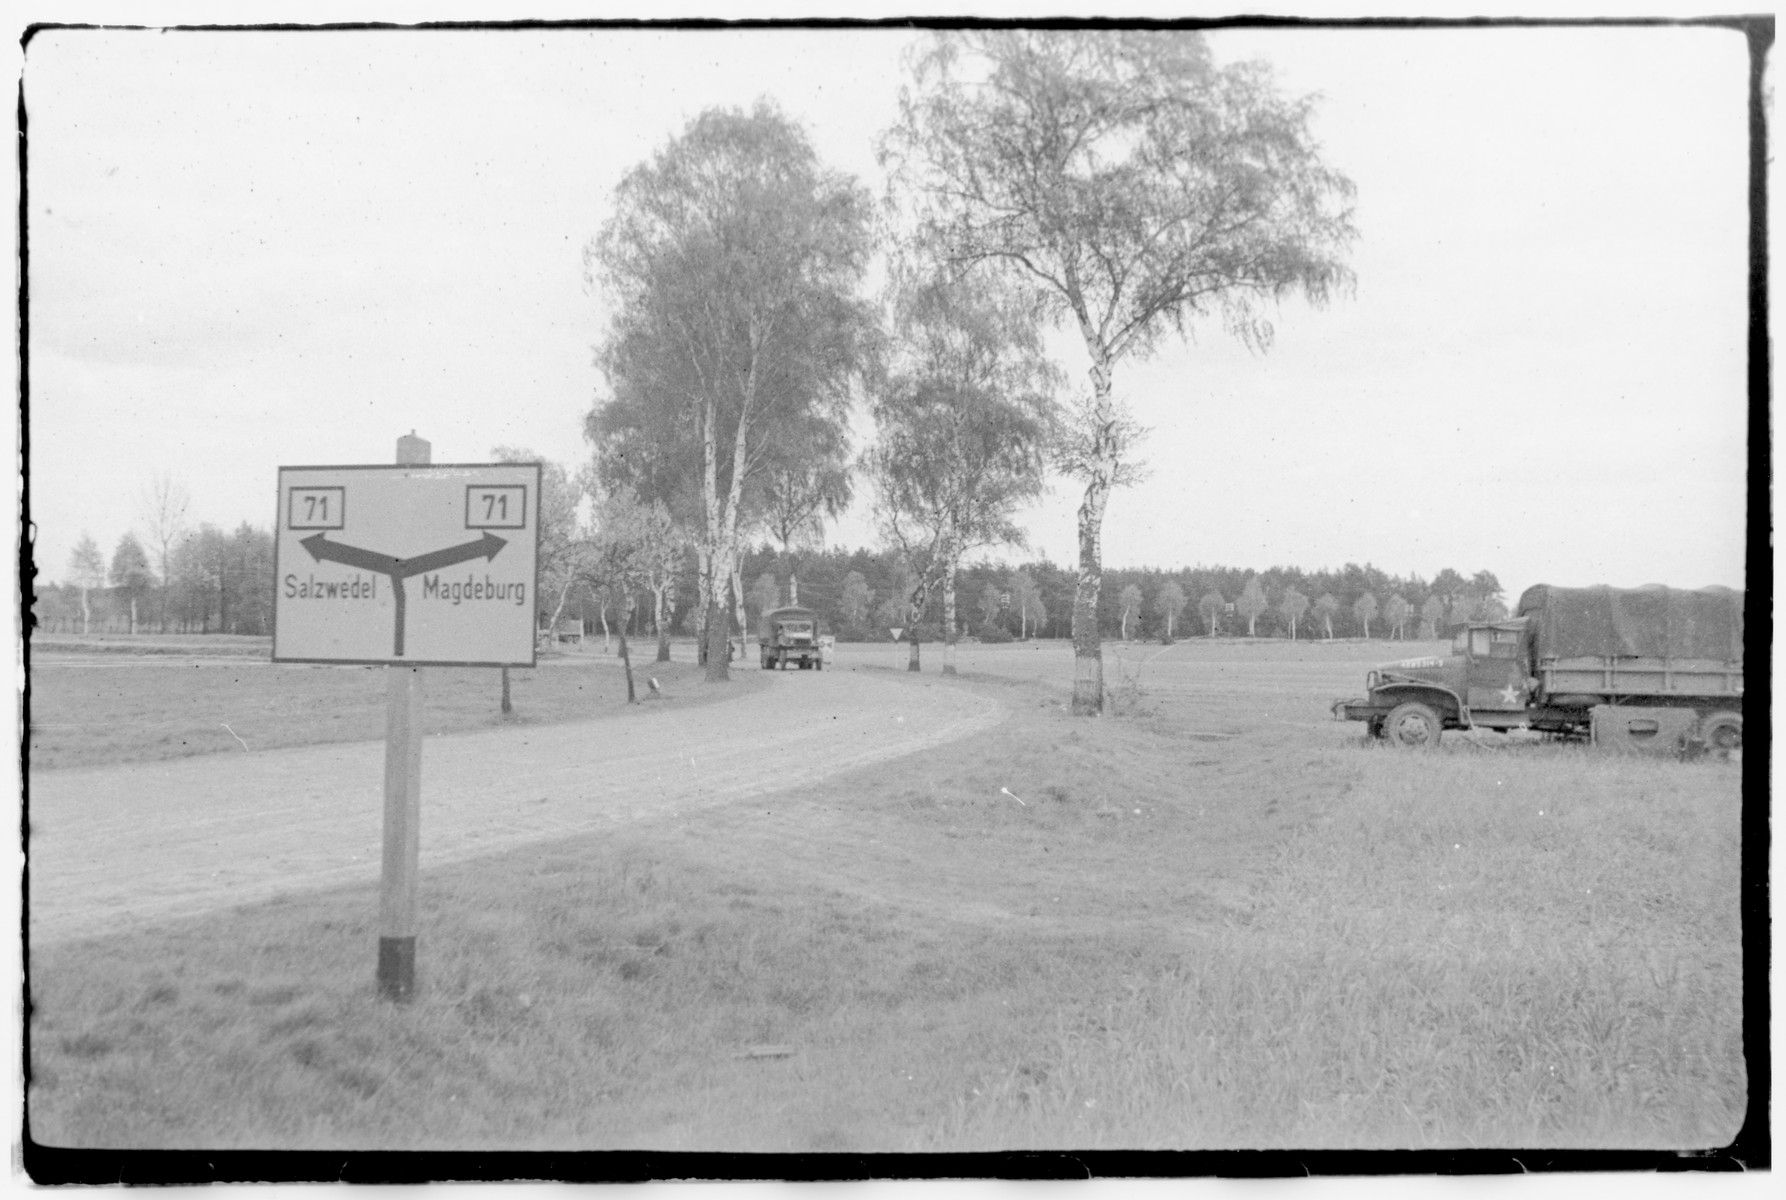 US Army Officers From The 91st Evacuation Hospital Unit Drive On Road Between Salzwedel And